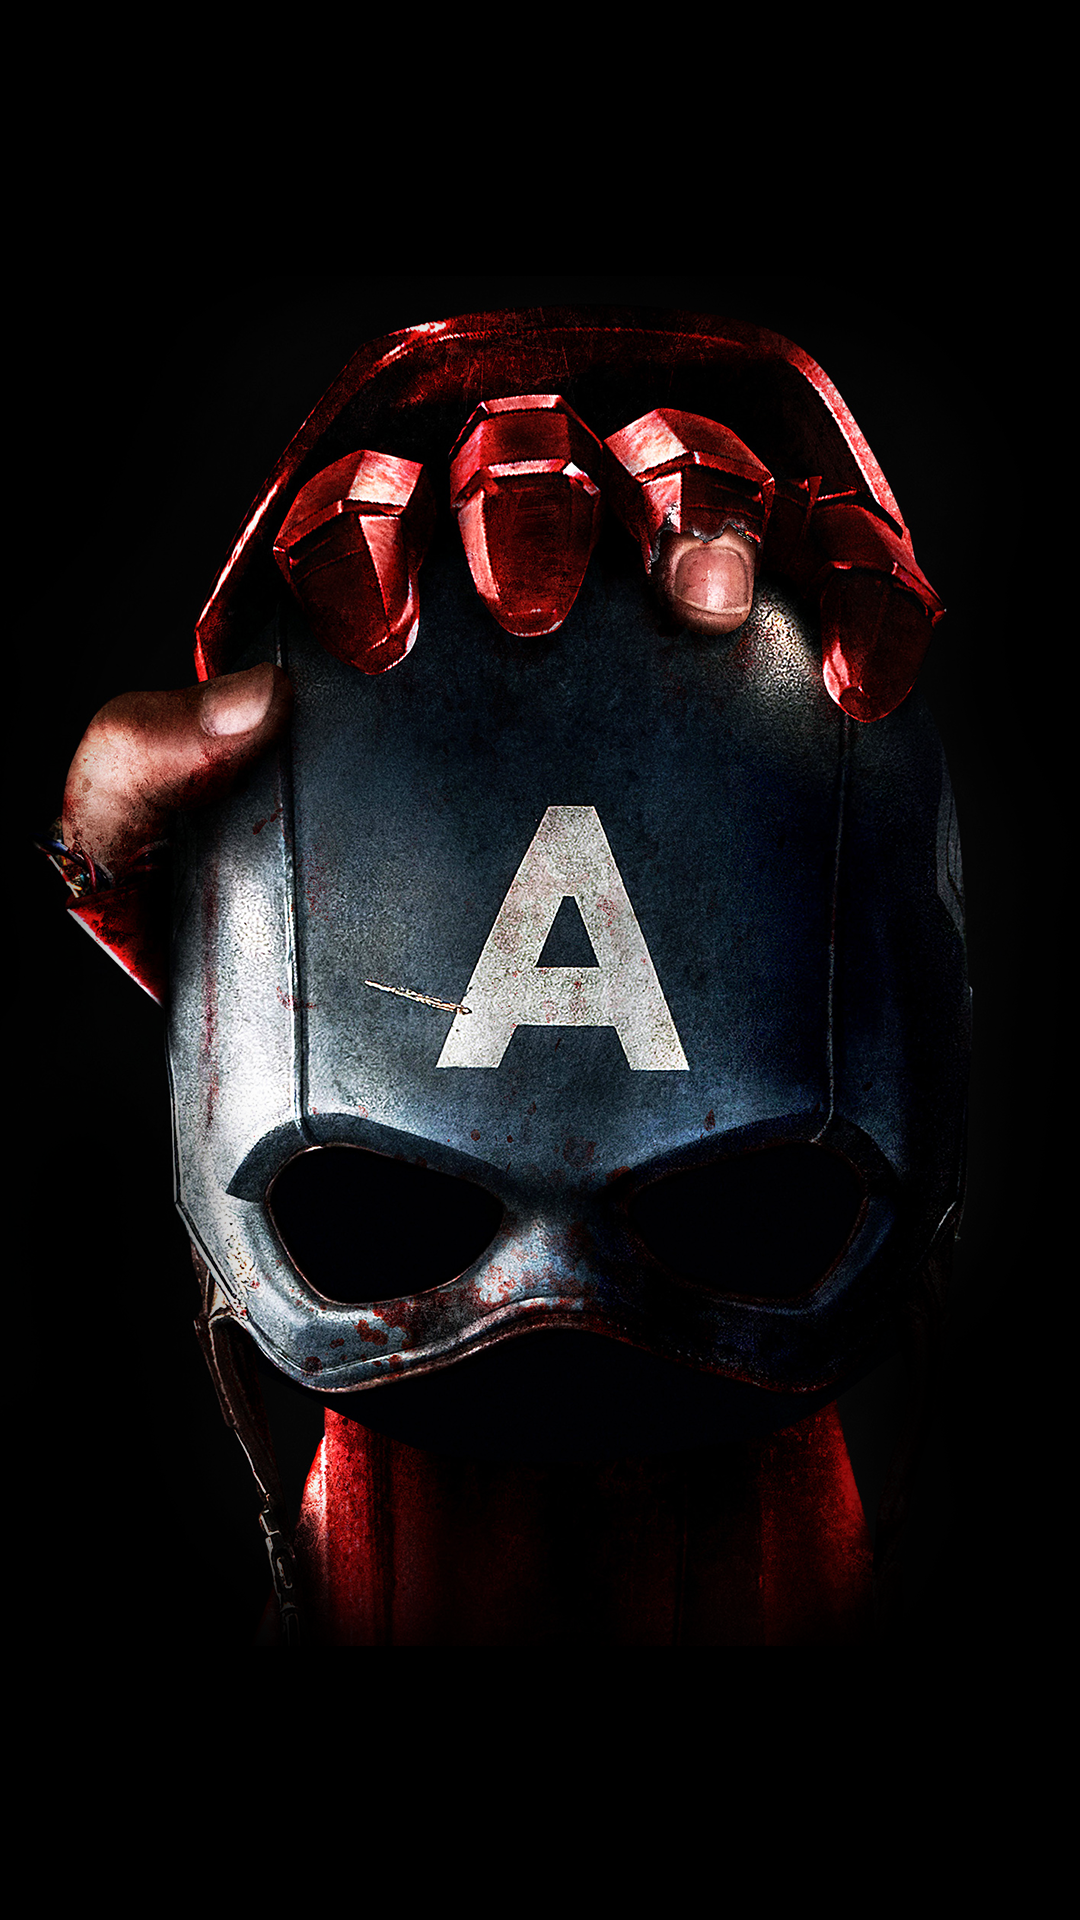 Ultra Hd Captain America Wallpaper For Your Mobile Phone 0346